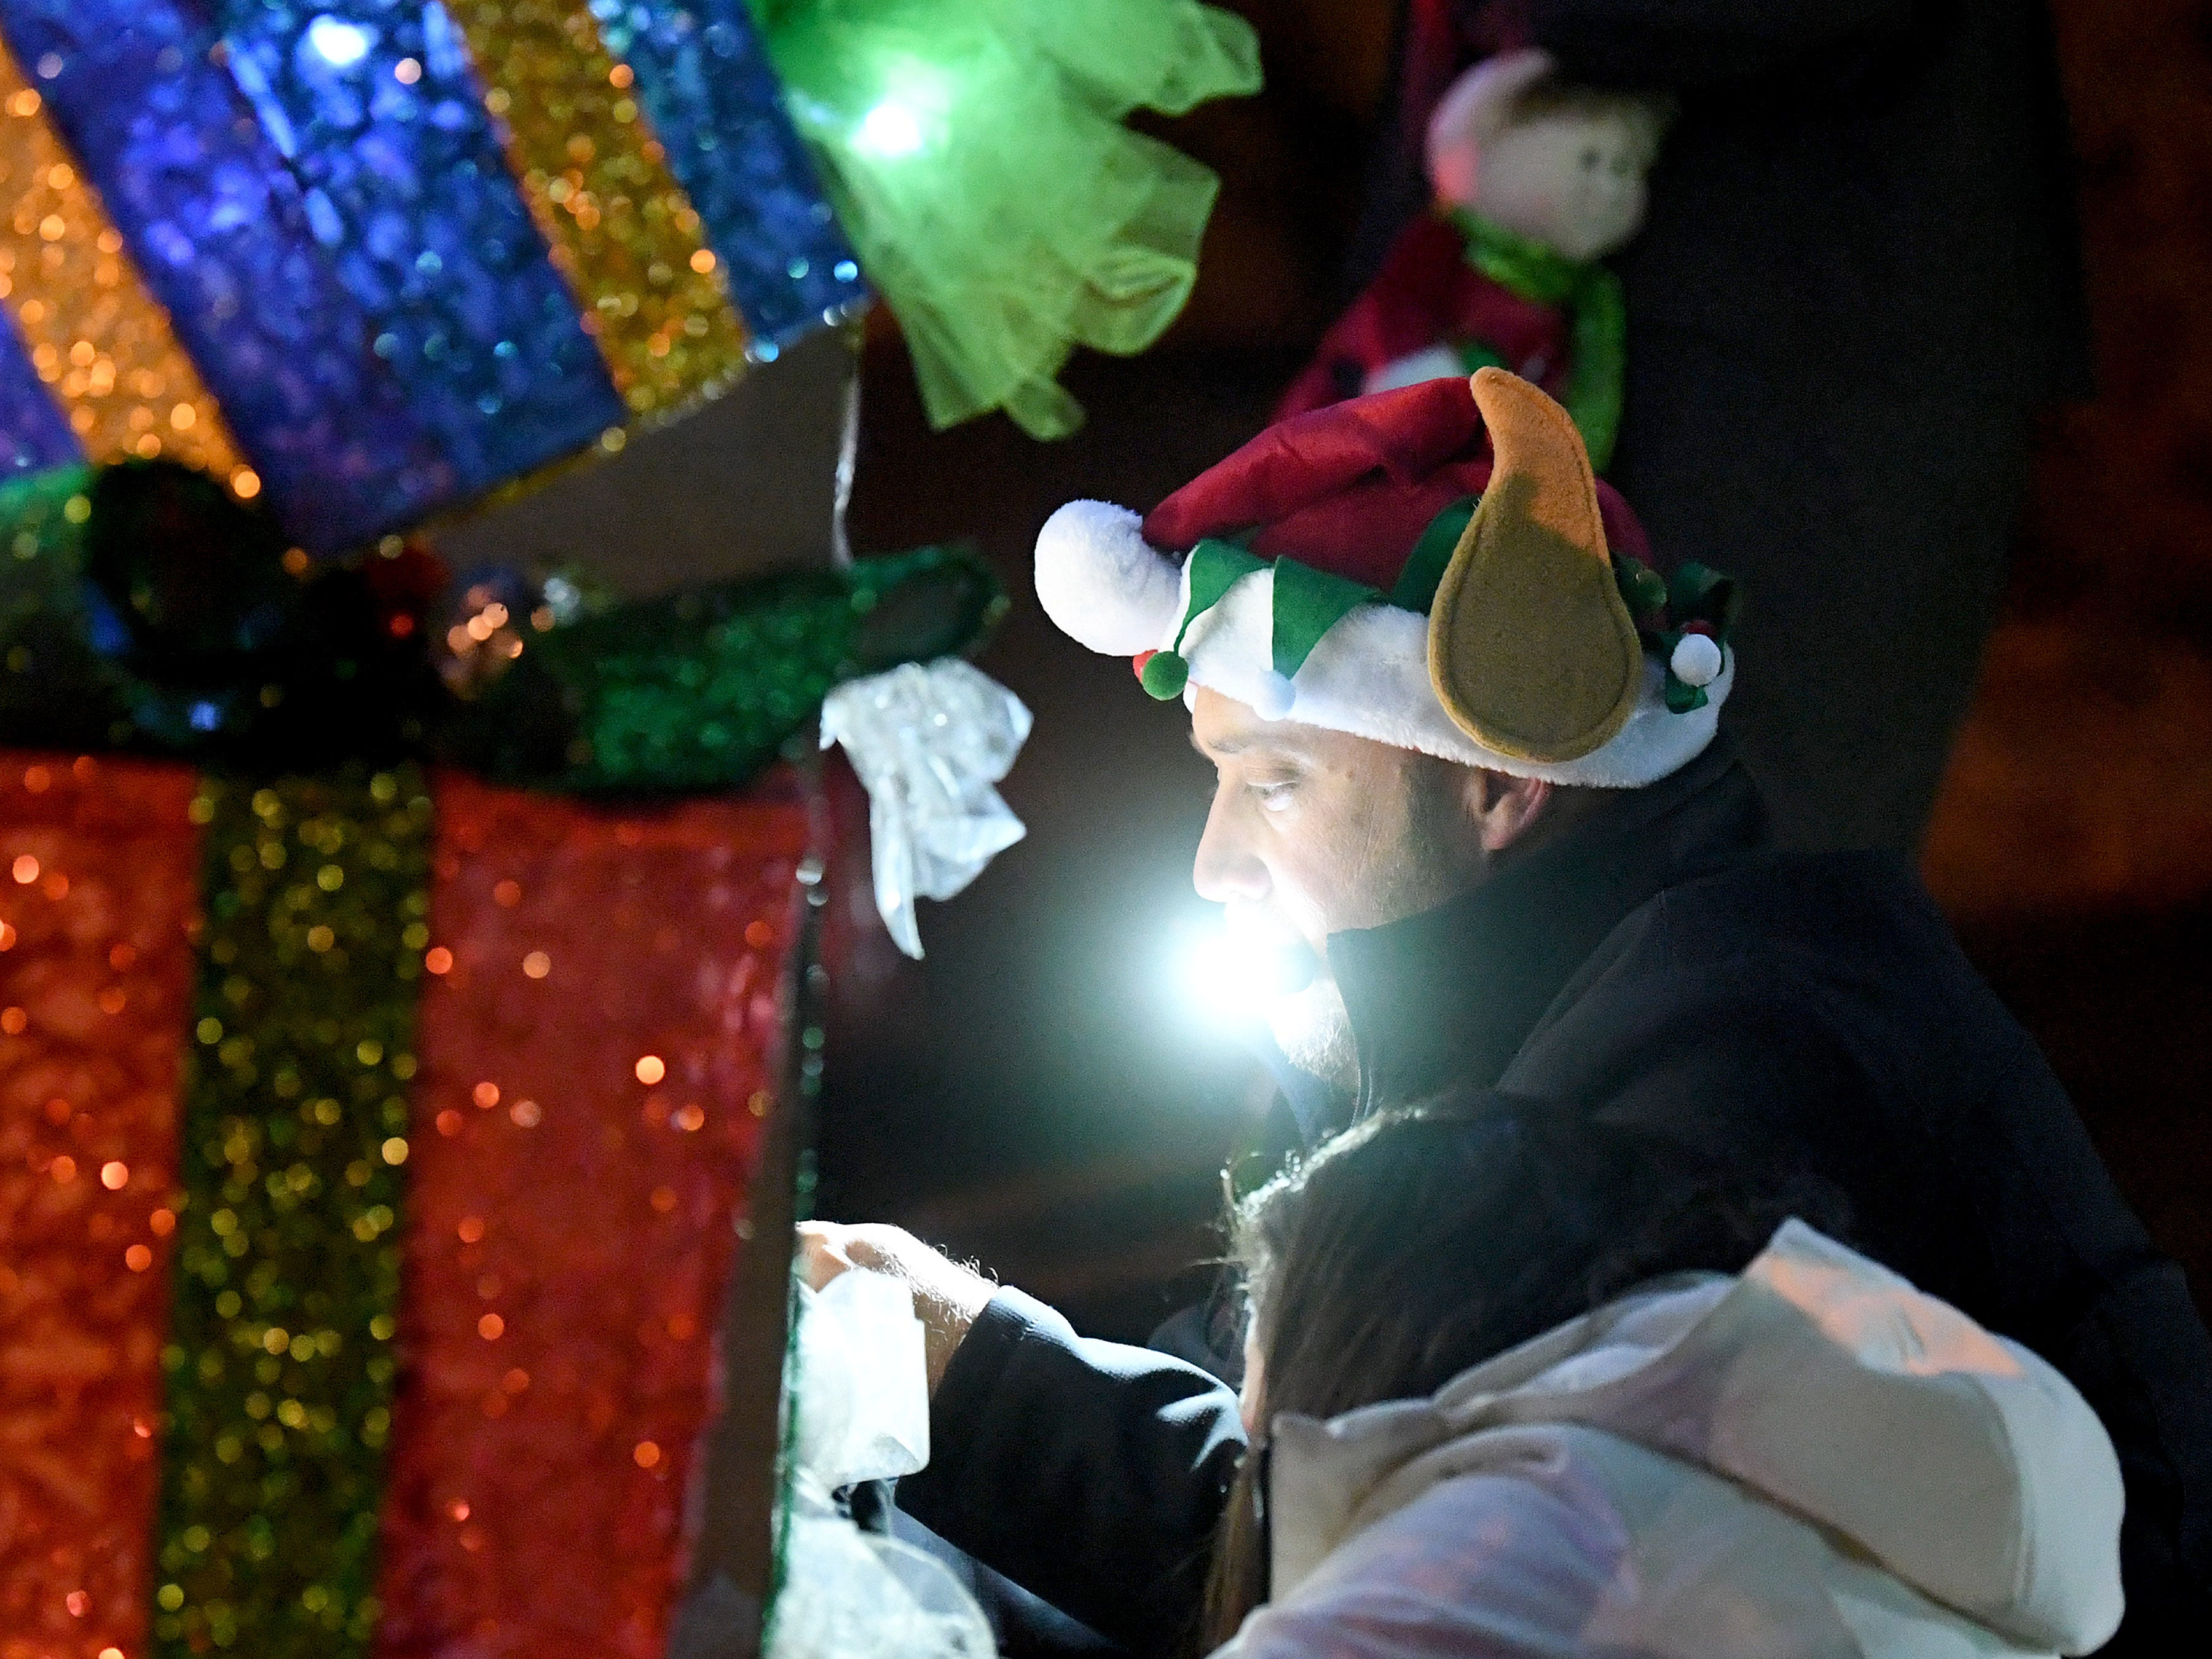 A parade participant helps decorate a float before the start of the Staunton Christmas Parade on Monday, Nov. 26, 2018.